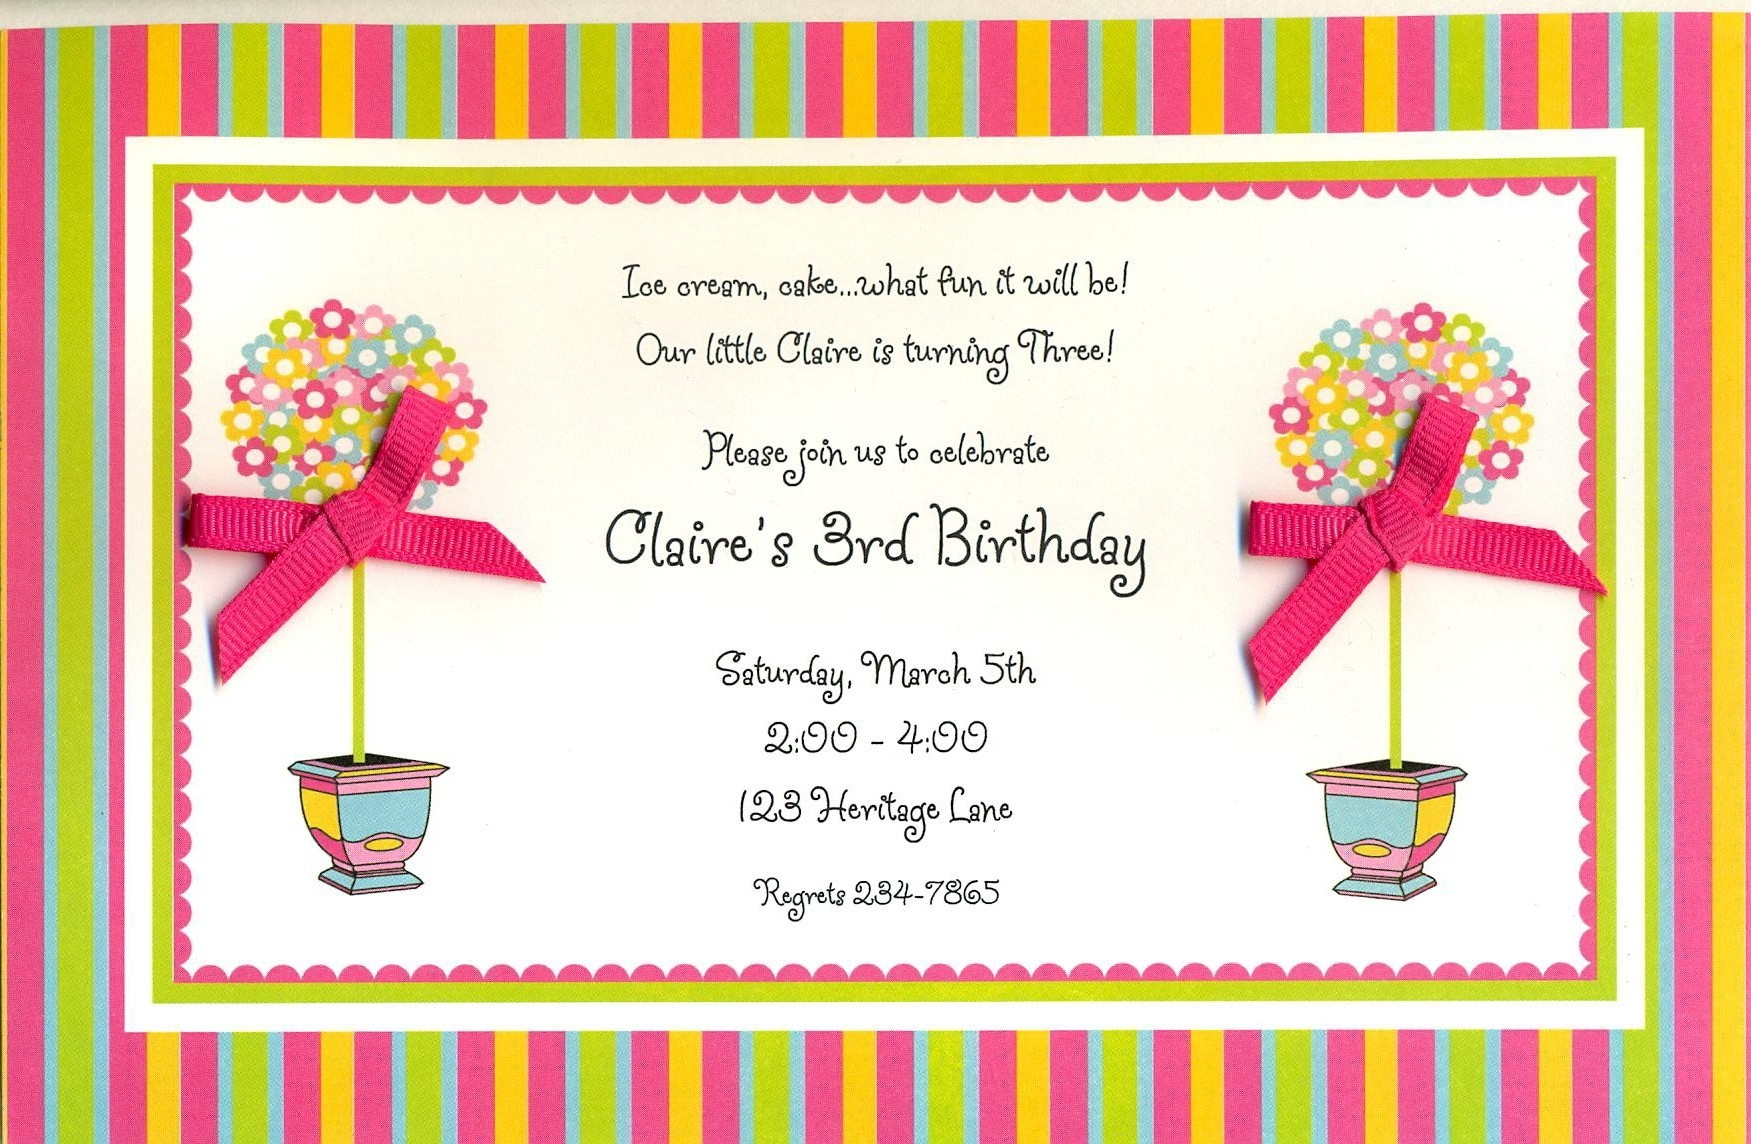 10 Unique Birthday Party Invitation Wording Ideas For Ladies Valid Collection Zoo